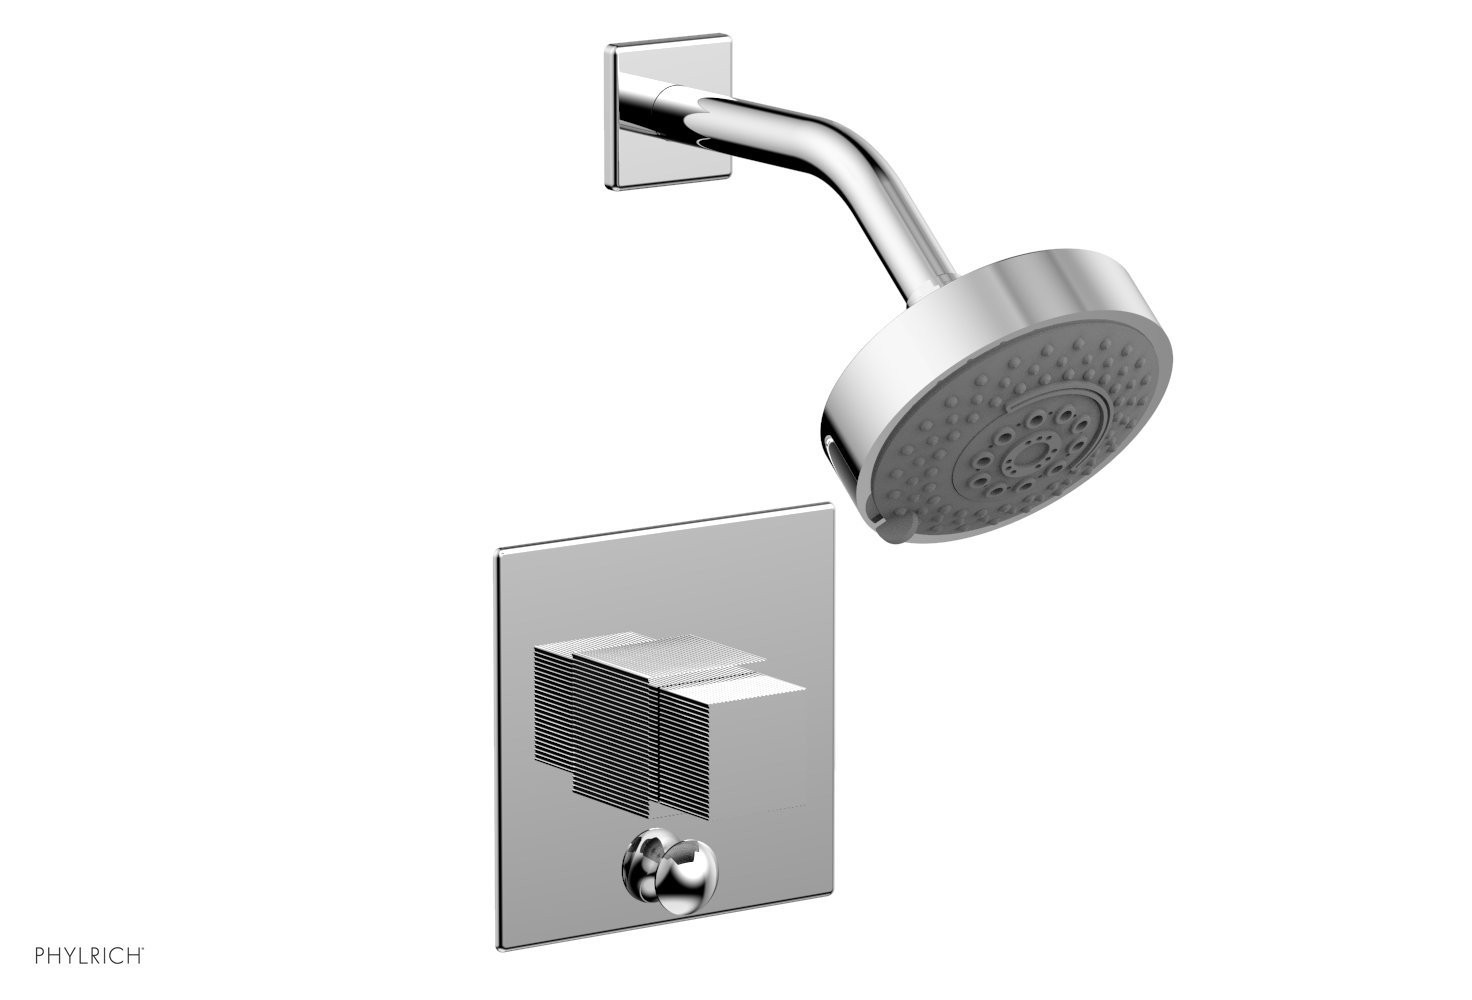 PHYLRICH 4-148 STRIA WALL MOUNT PRESSURE BALANCE SHOWER AND DIVERTER SET WITH CUBE HANDLE